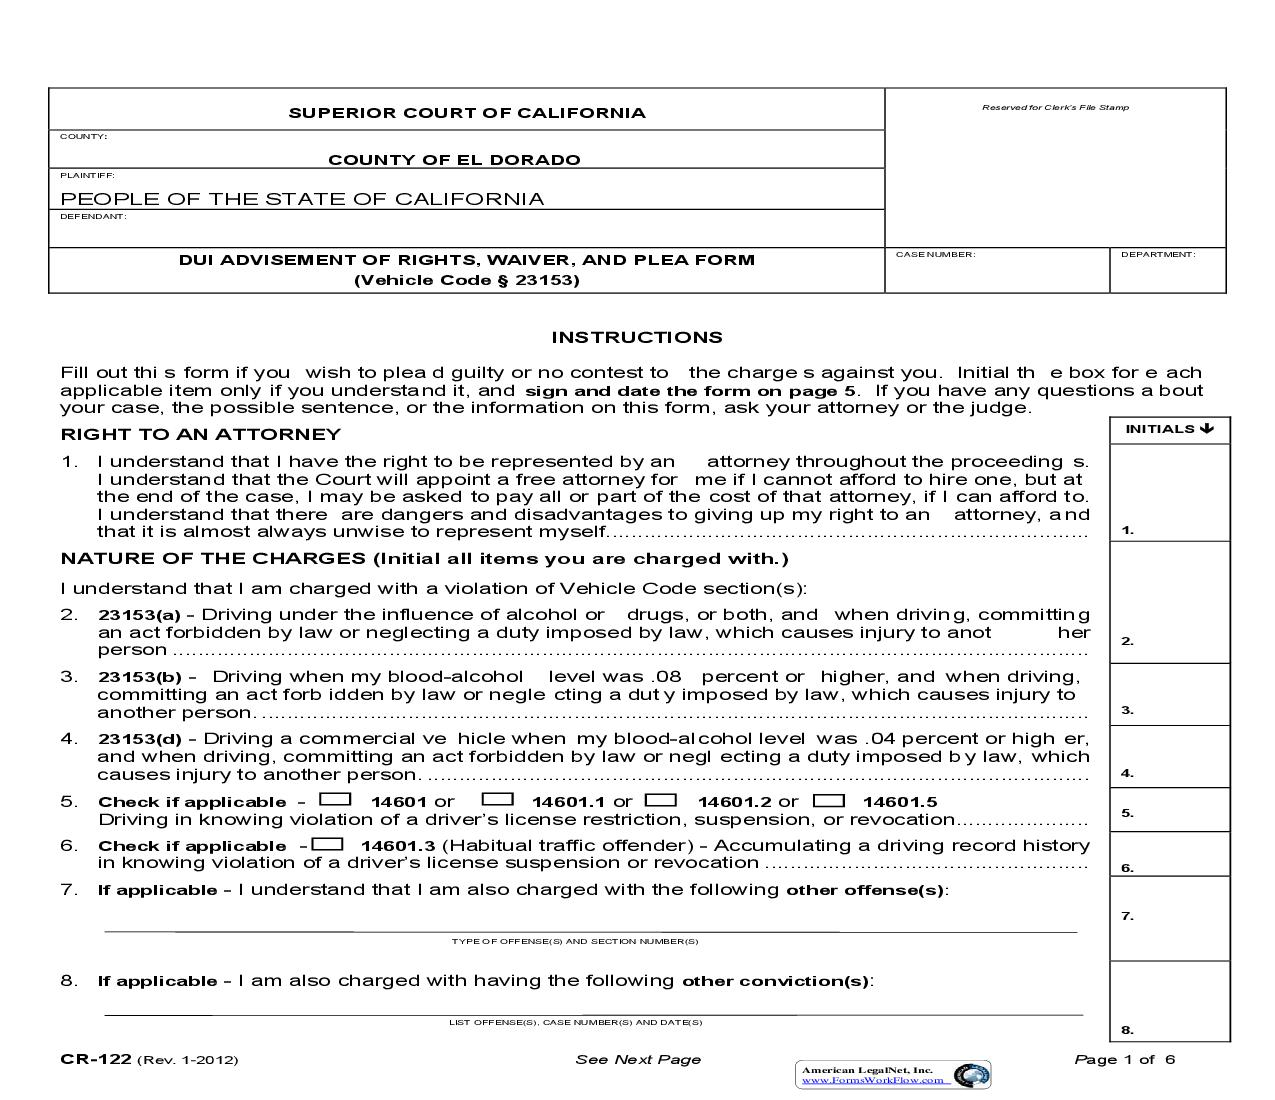 DUI Advisement Of Rights Waiver And Plea Form (With Injury) {CR-122} | Pdf Fpdf Doc Docx | California